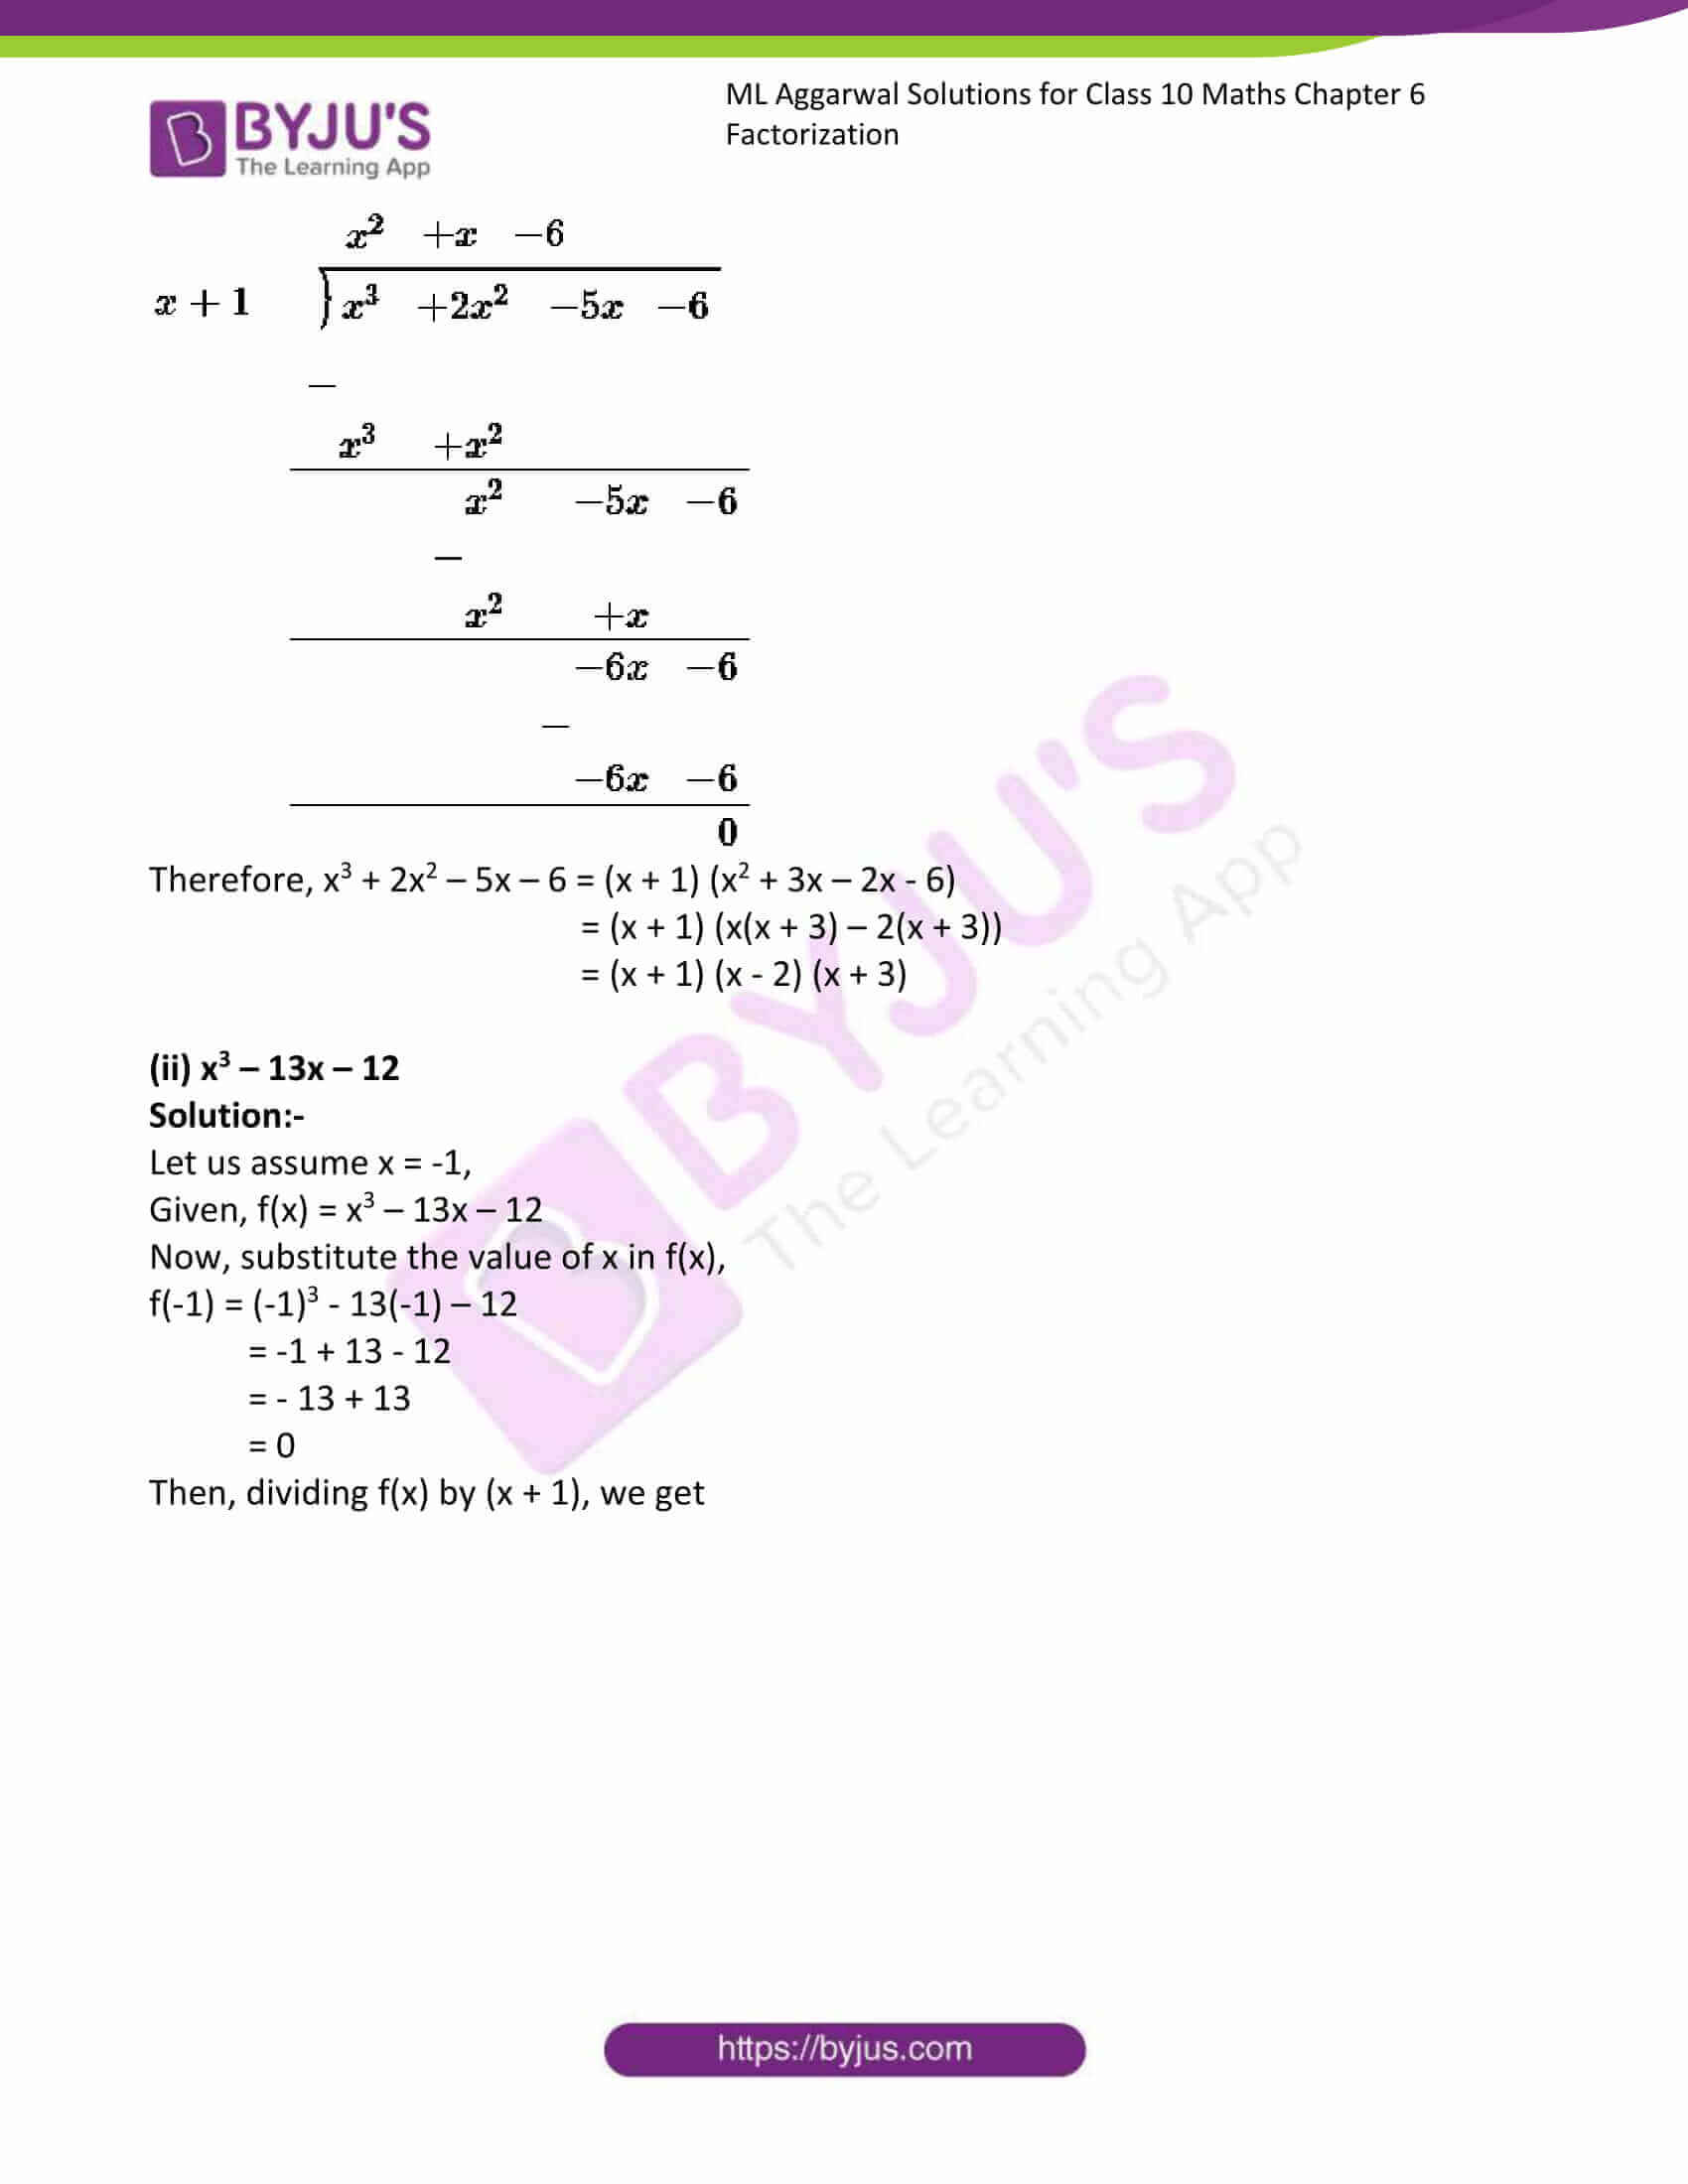 ml aggarwal solutions class 10 maths chapter 6 12